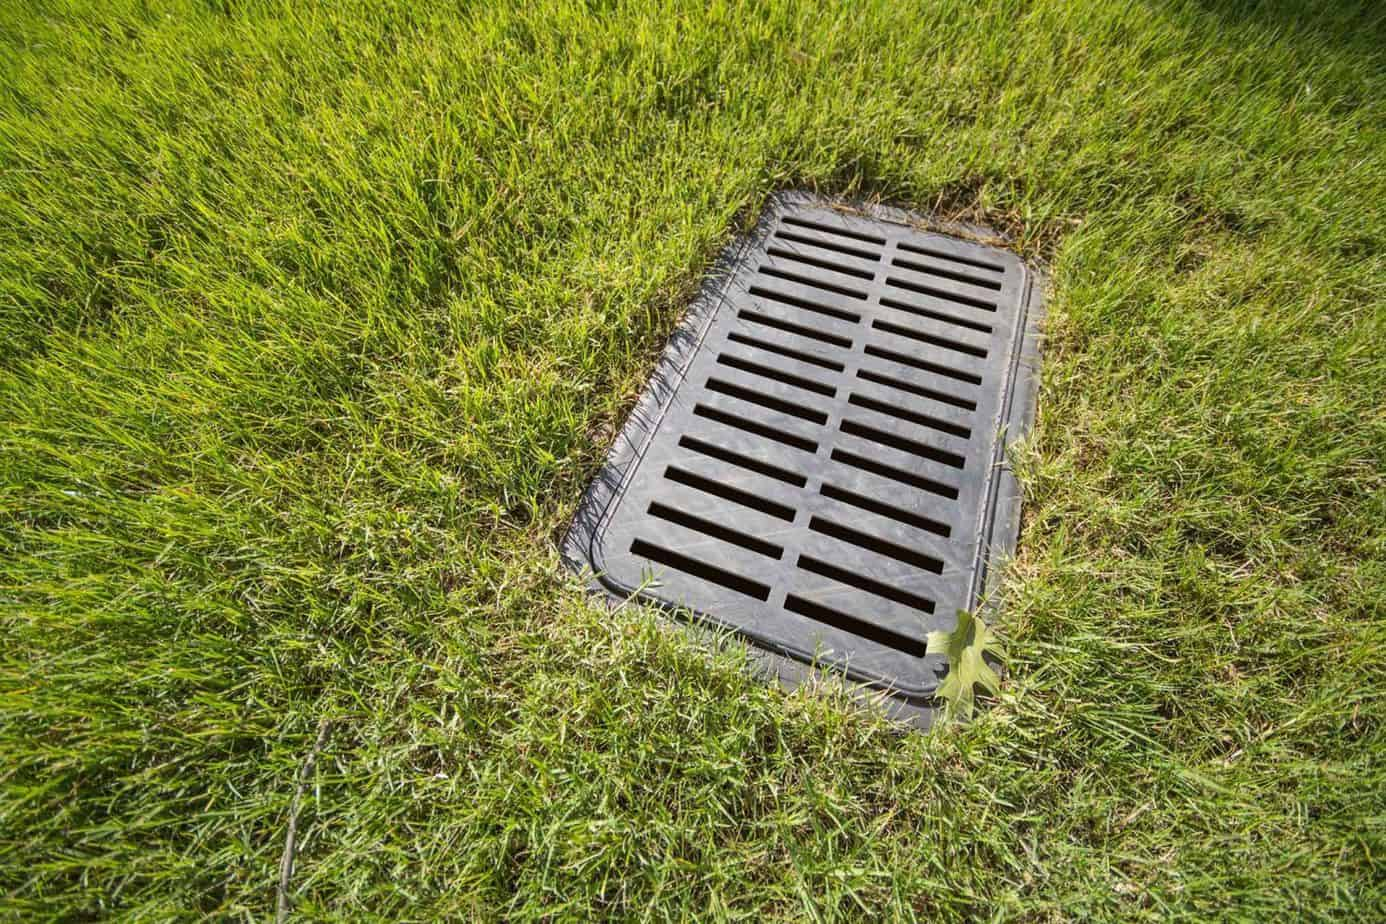 surface drain - surface drain in lawn